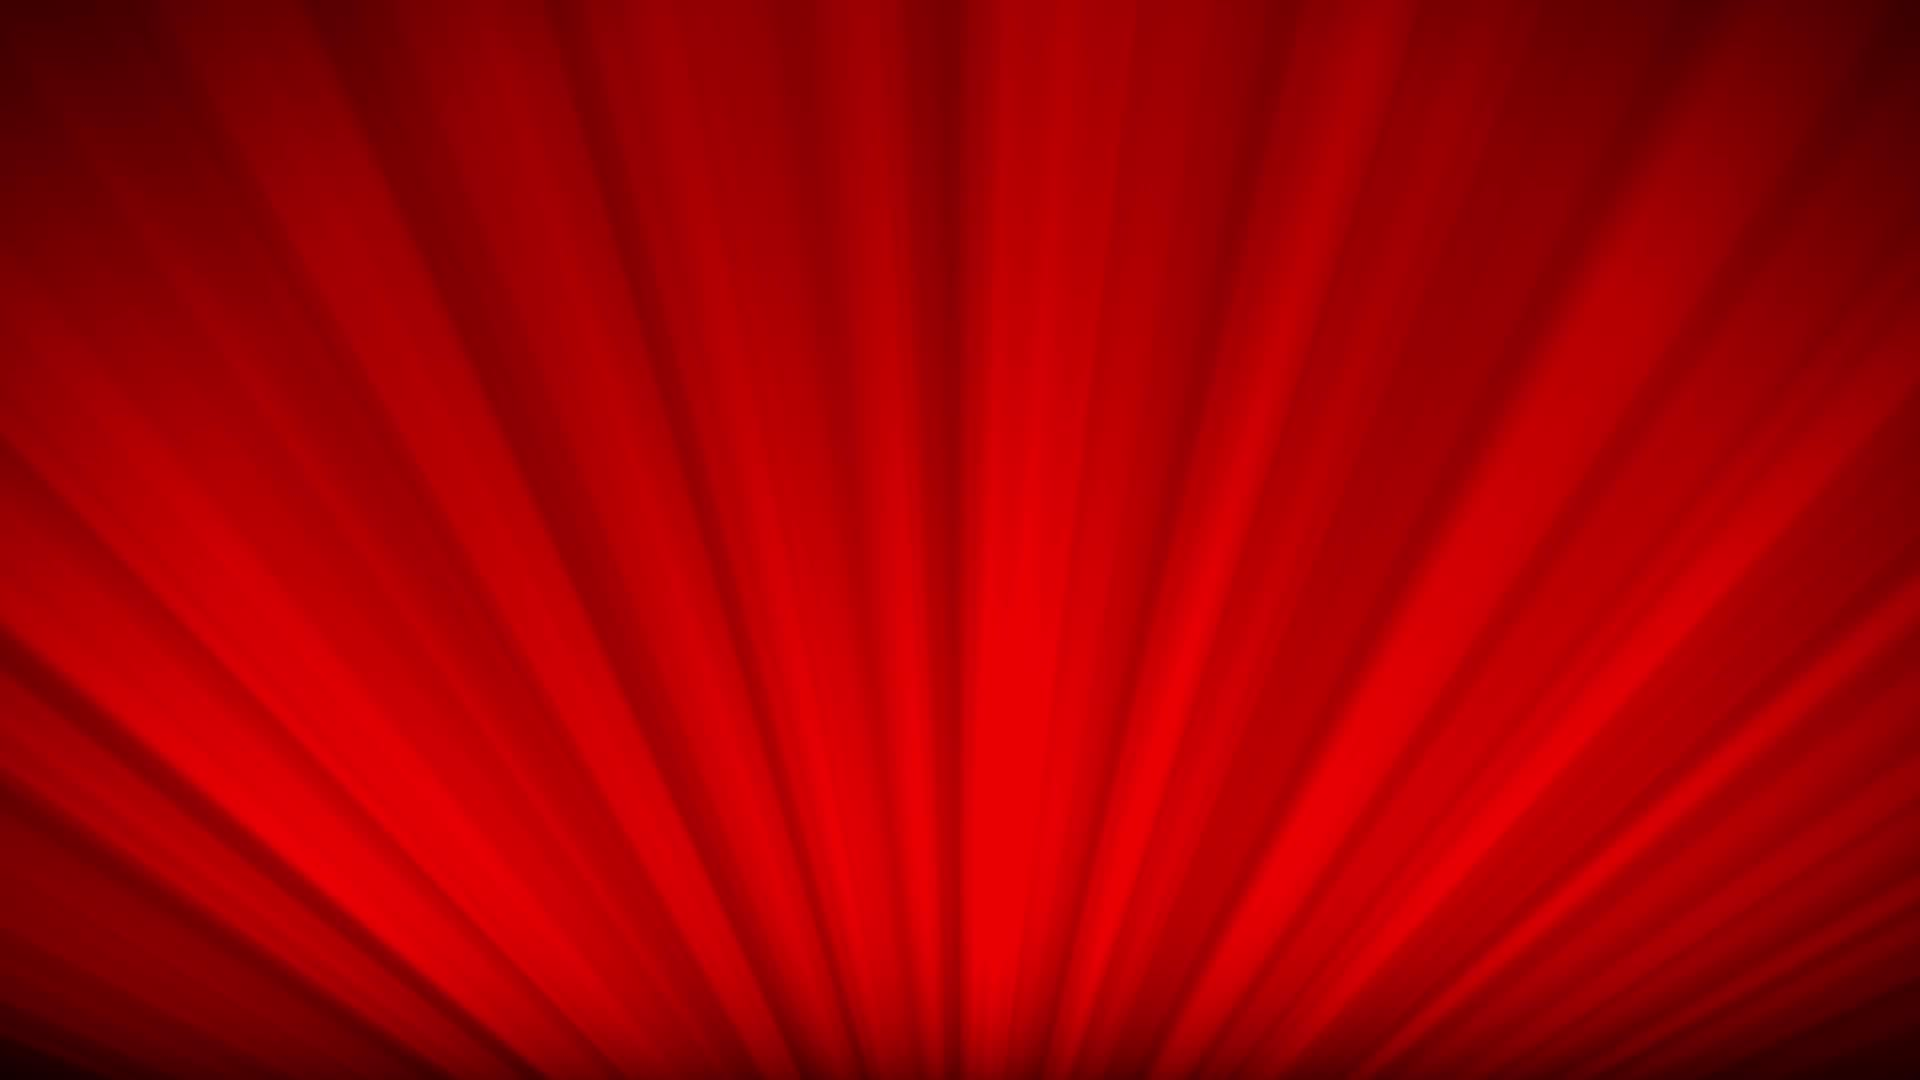 cinema red background images